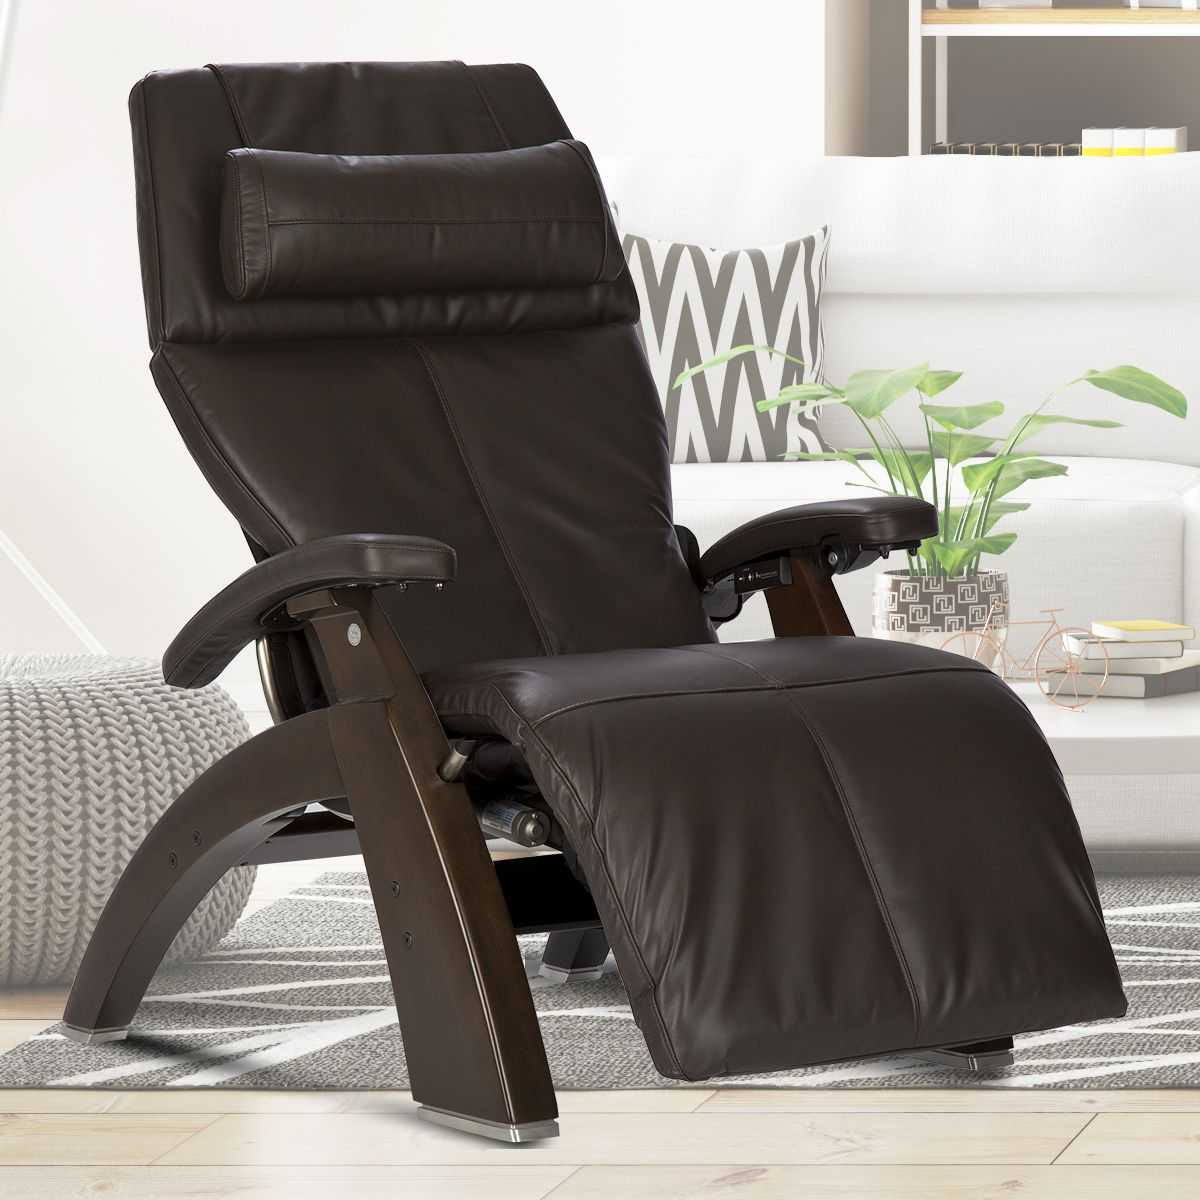 Perfect Chair® PC-600 Silhouette